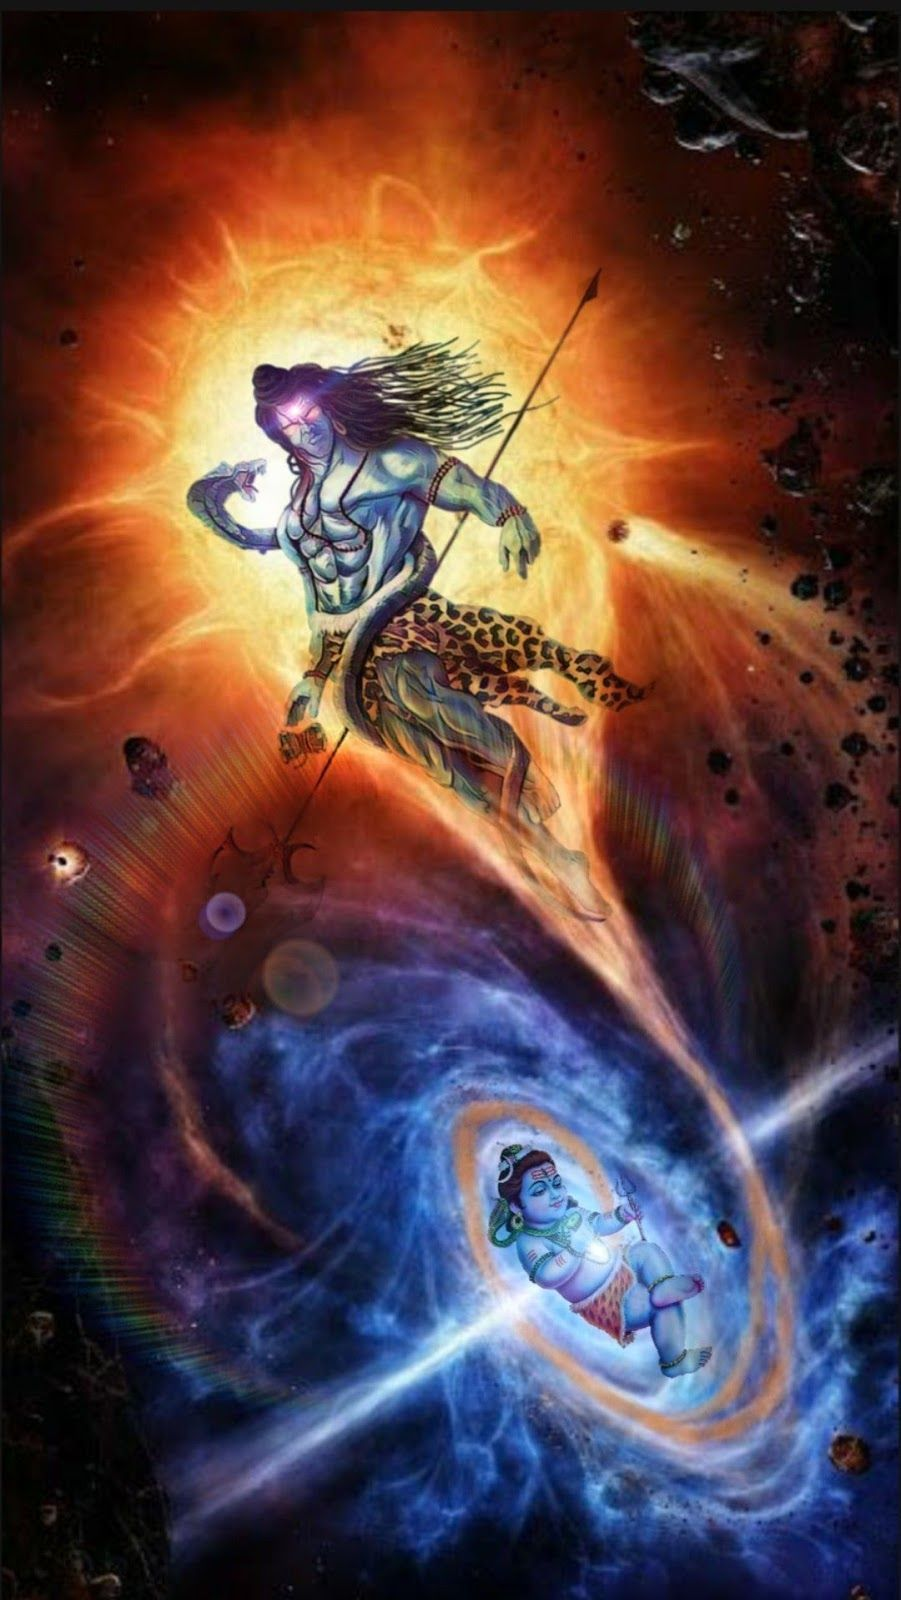 280 Lord Shiva Angry Hd Wallpapers 1080p Download For Desktop 2020 Mahadev Animated Images In 2020 Lord Shiva Painting Lord Shiva Shiva Angry